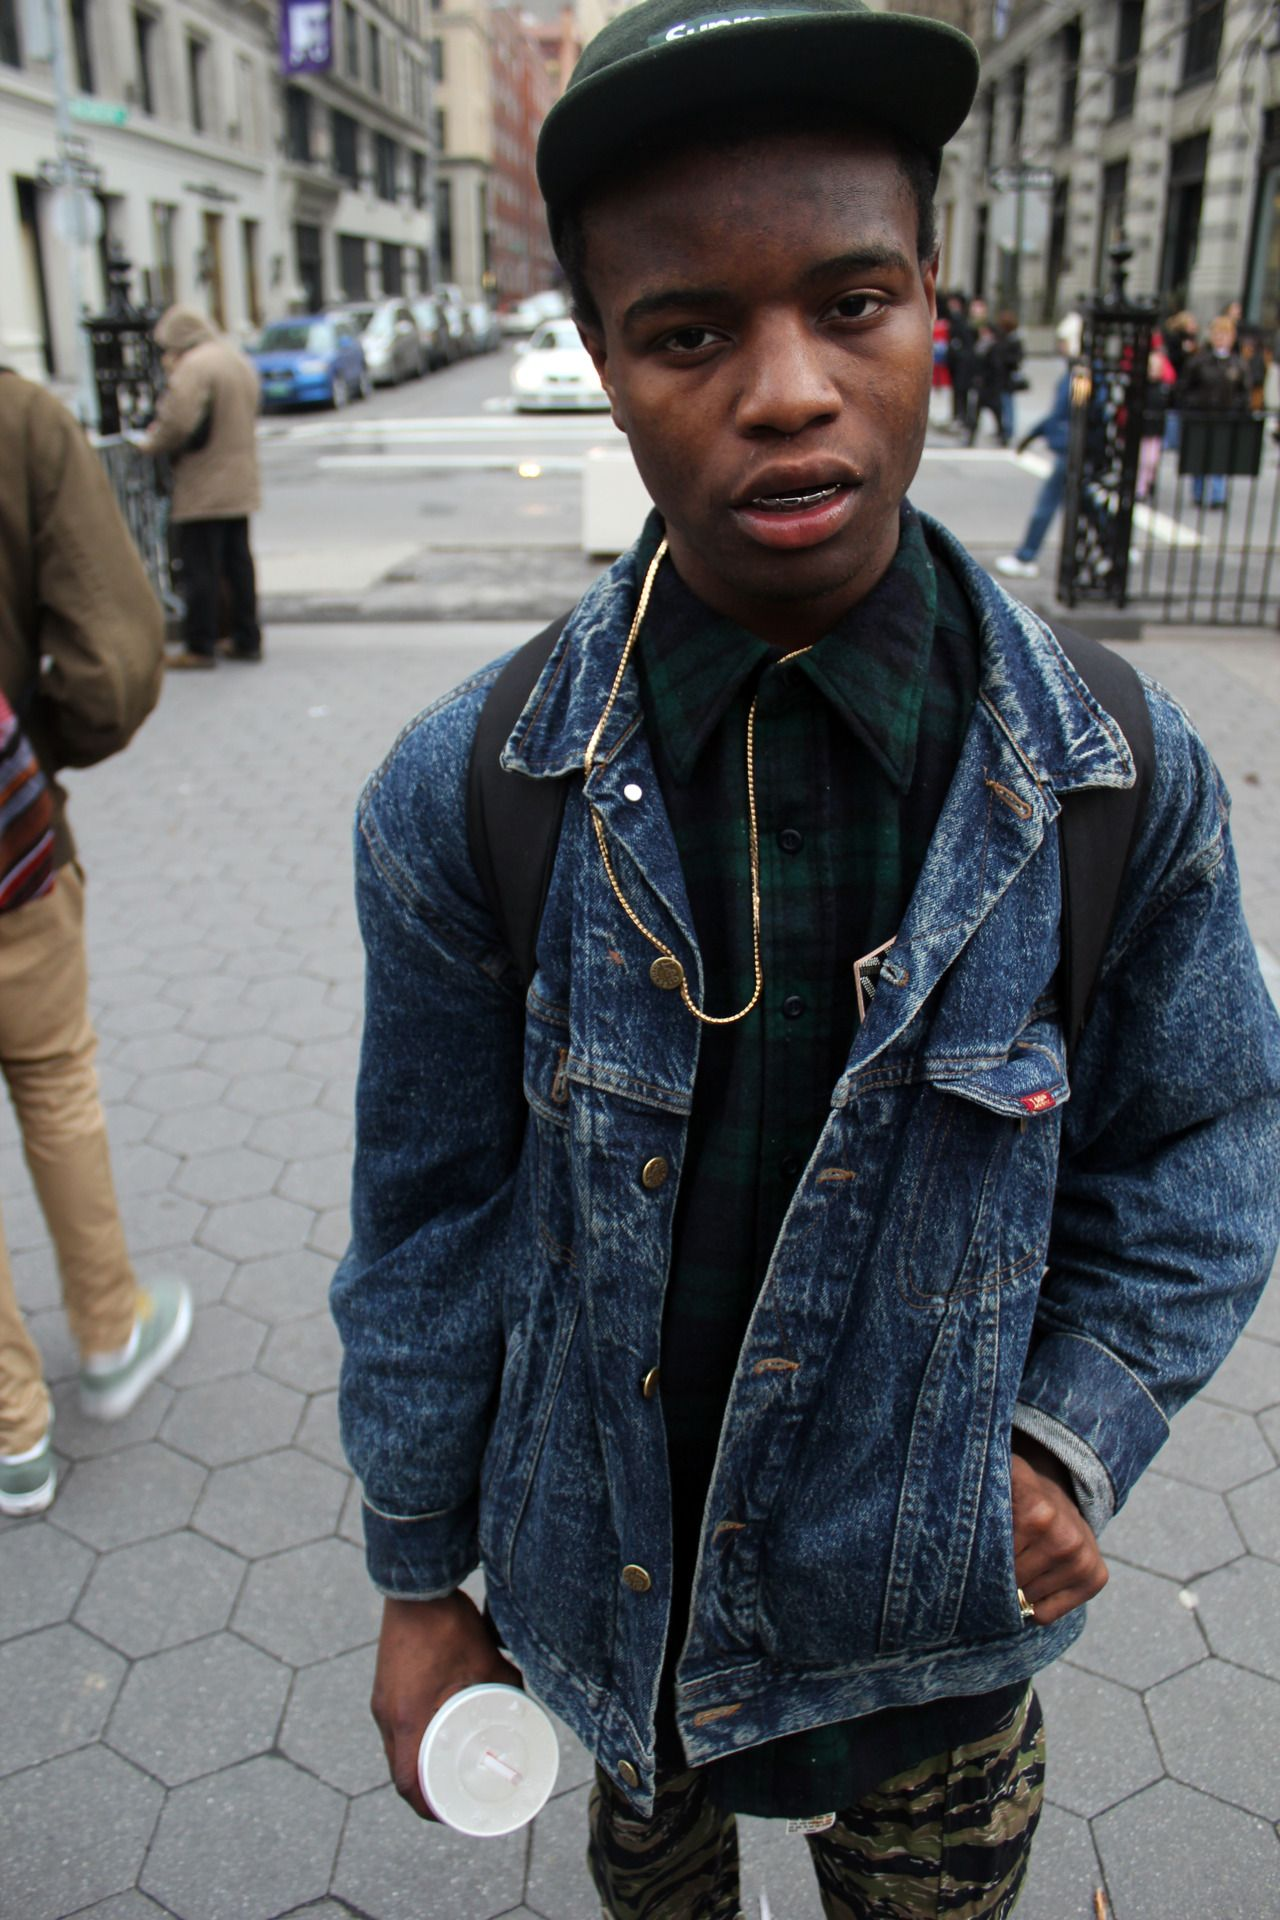 38b5ee6a4e583 ian connor - Google Search